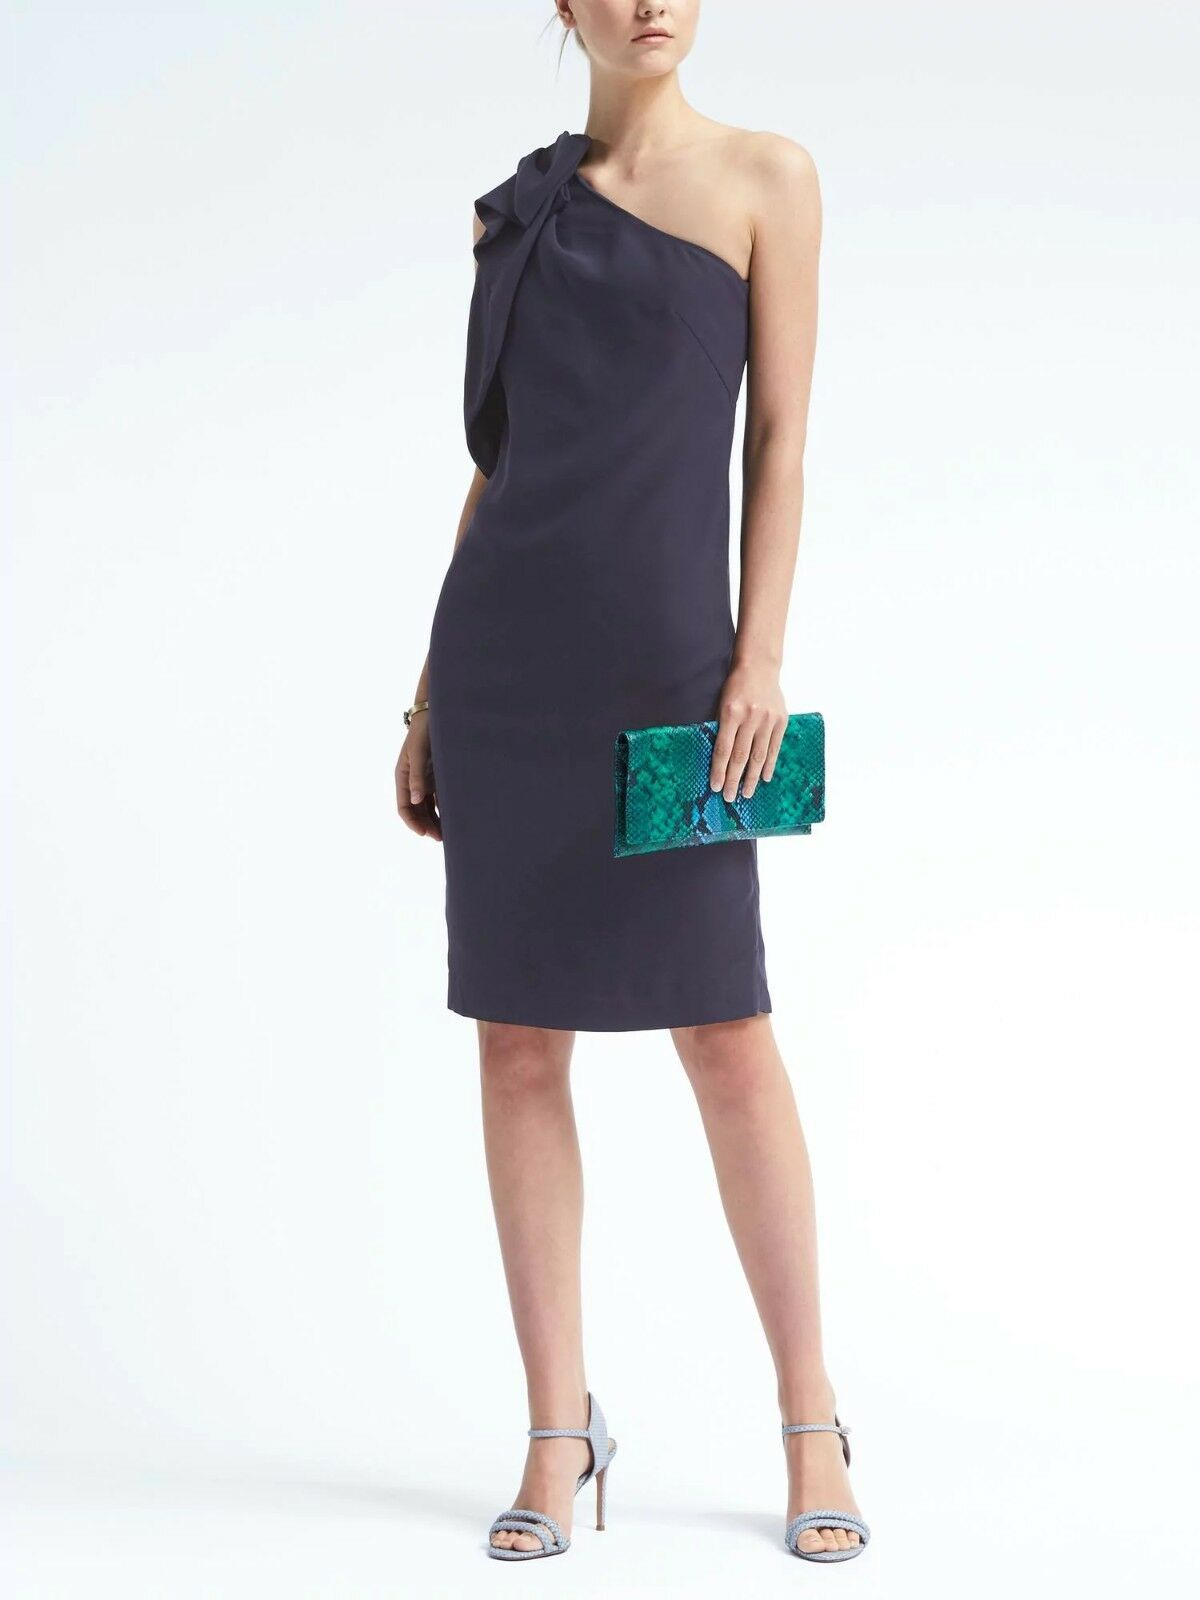 NWT Banana Republic One-Shoulder Bow Dress, Navy Größe 6      v829